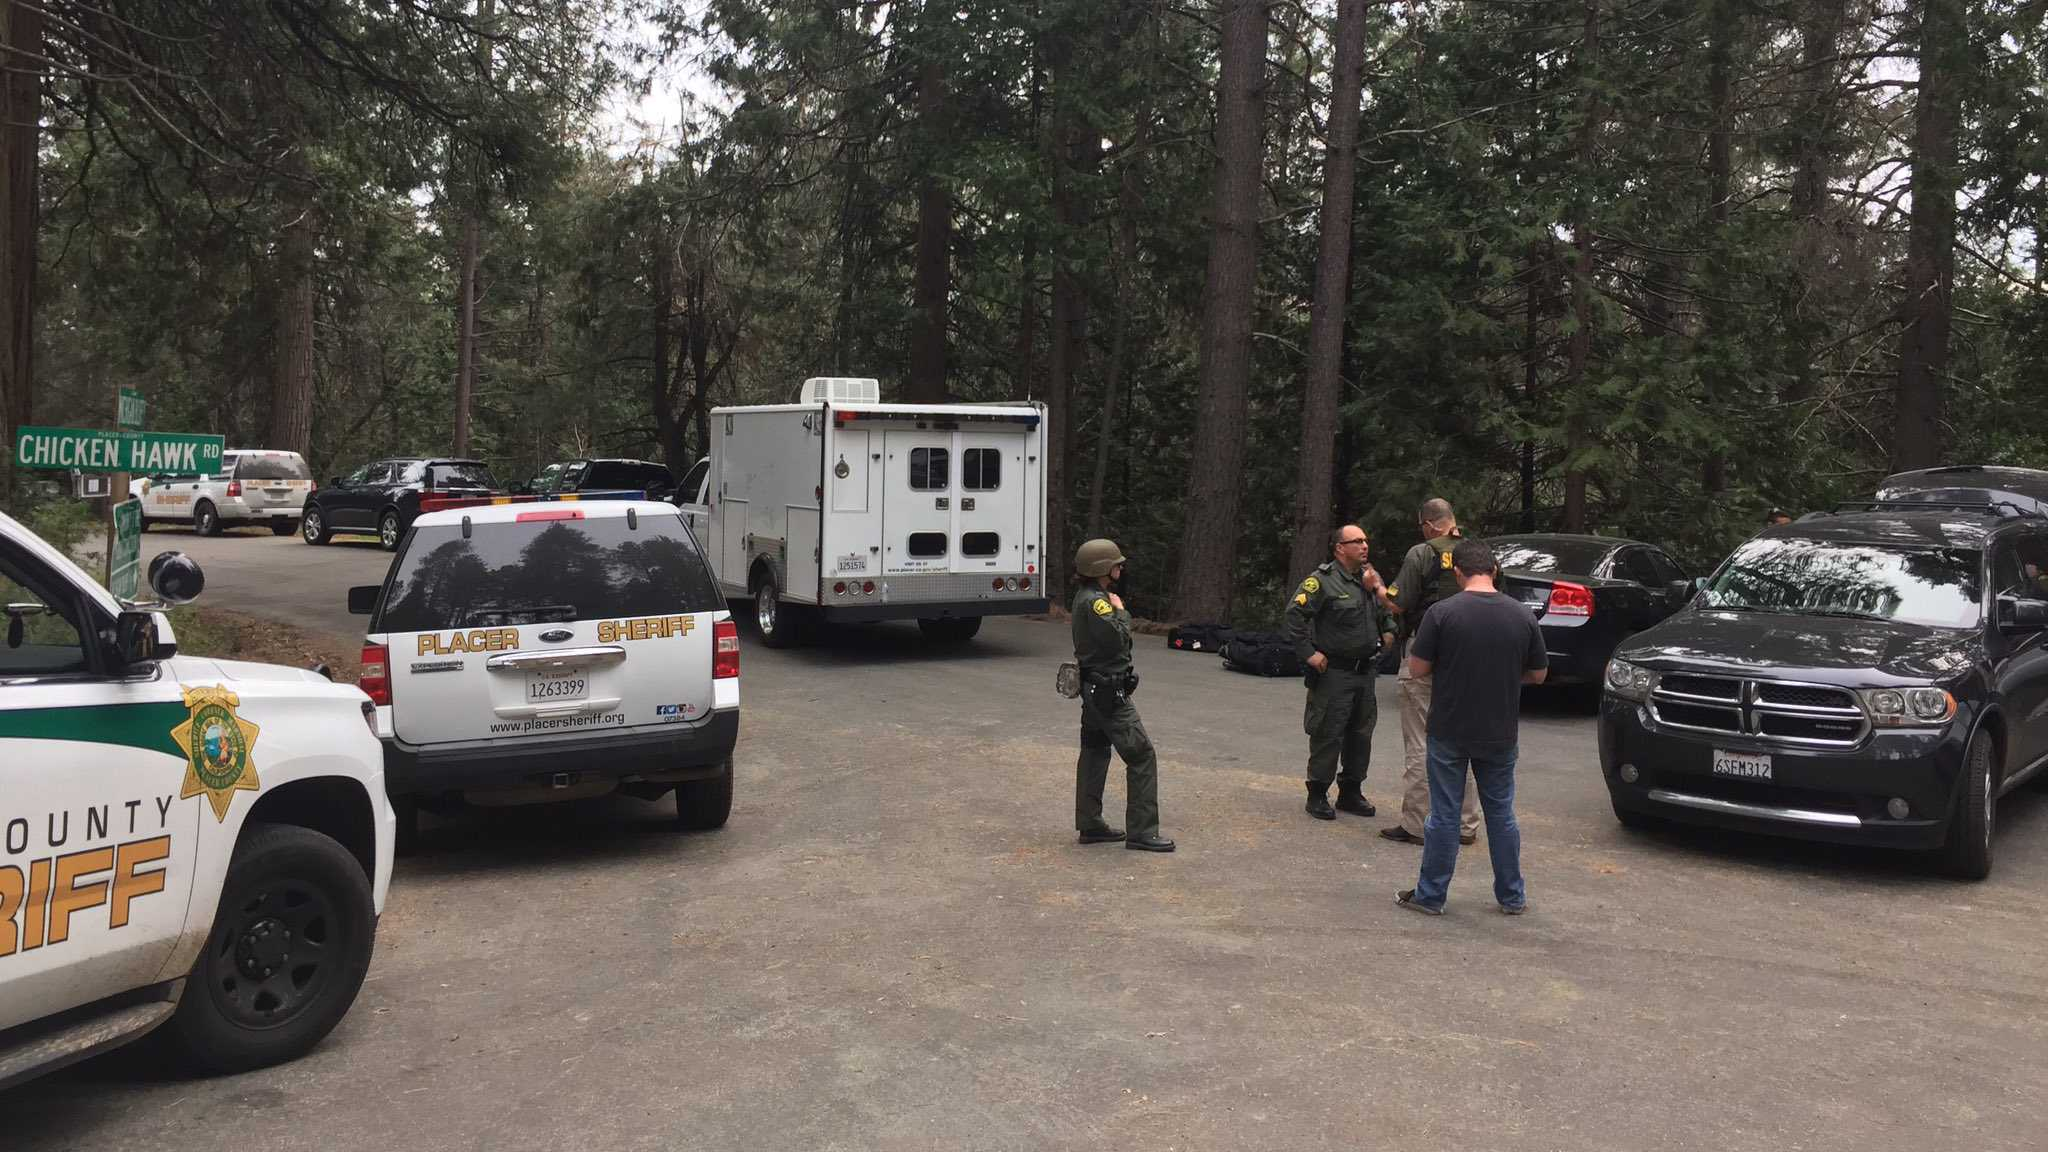 Deputies were in a standoff with an armed man on Wednesday, April 5, 2017, outside of a Foresthill home, the Placer County Sheriff's Office said.